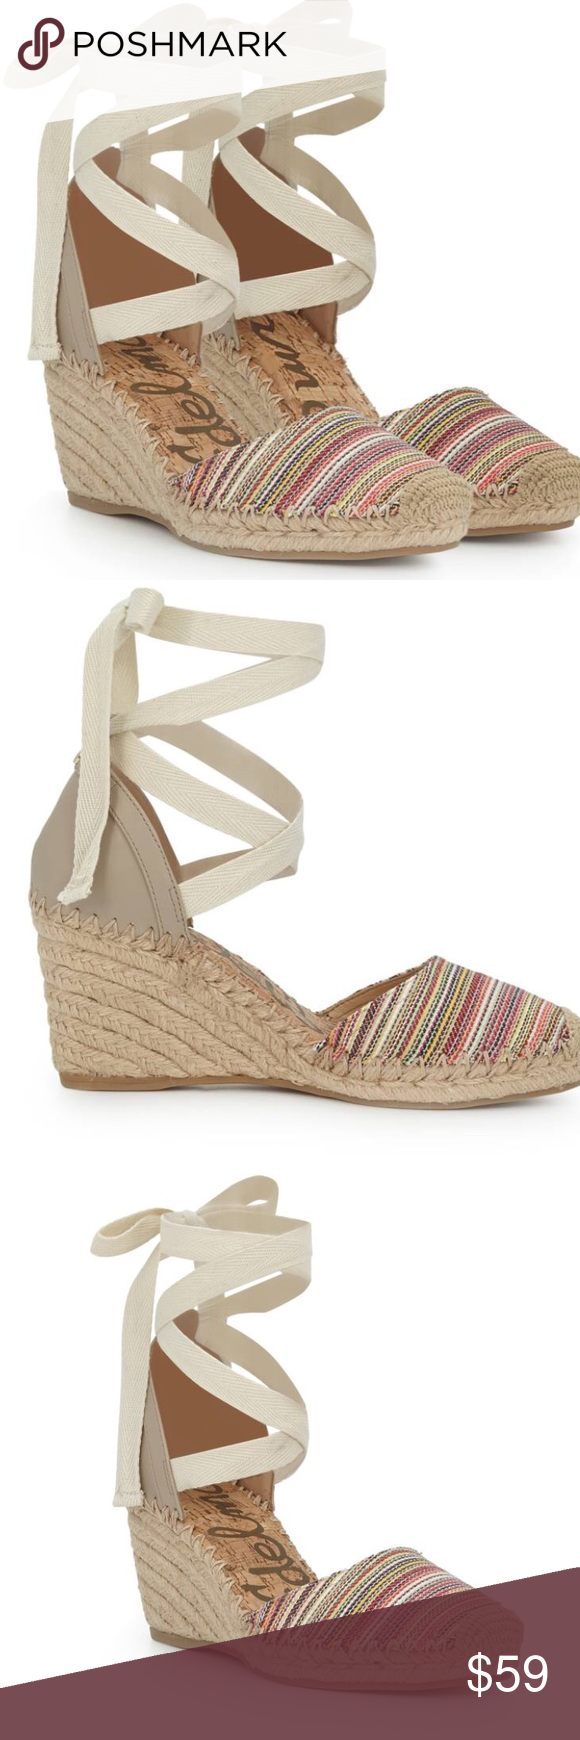 6db819ec8 Sam Edelman Patsy Espadrilles -Lace-up espadrilles wedges -ribbon lace up - multi-color and light weight -fabric man made upper balance -3in wedge  height ...